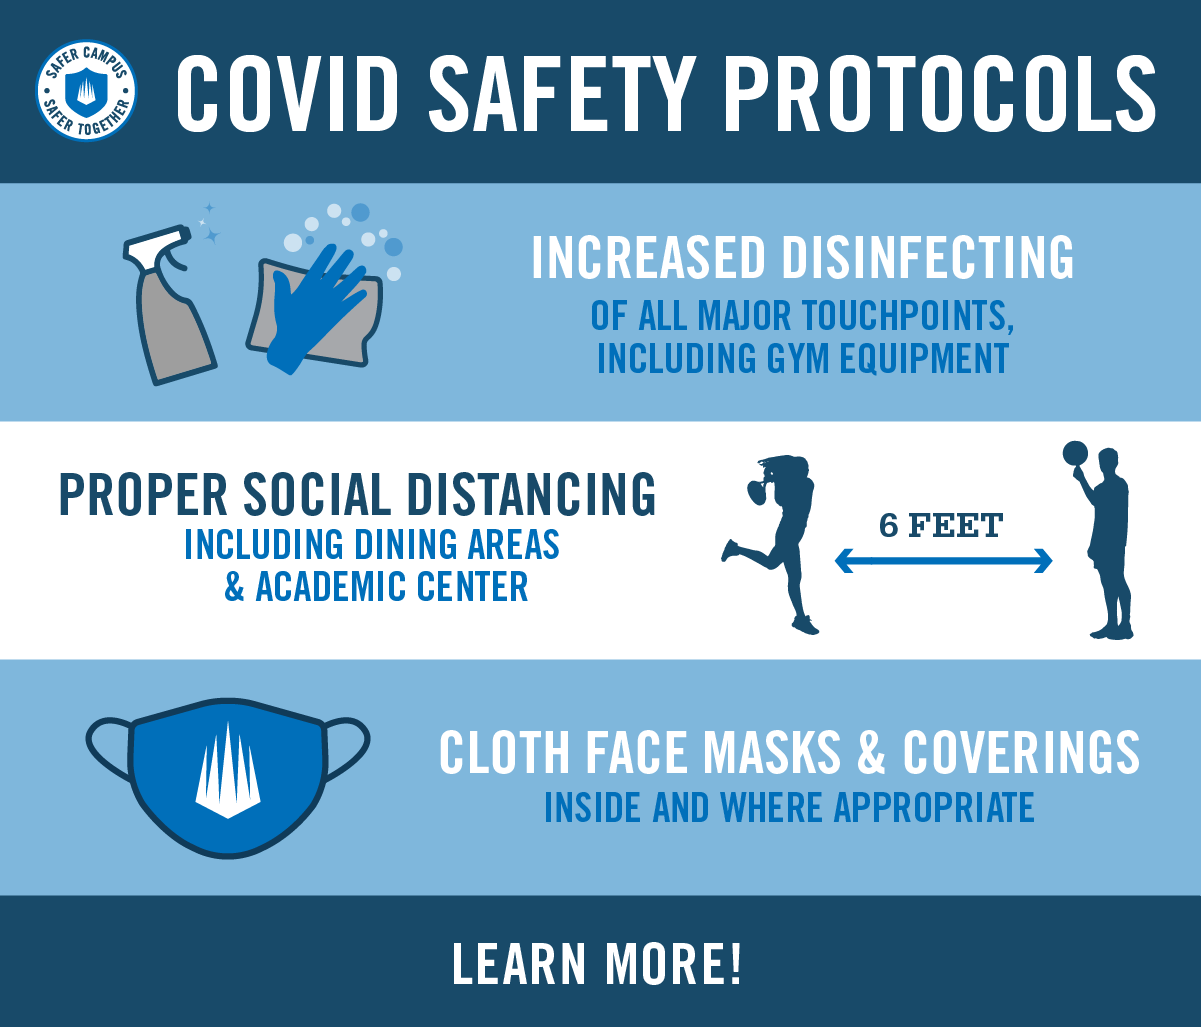 COVID Safety Protocols. Increased disinfecting, proper social distancing, cloth face masks & coverings.